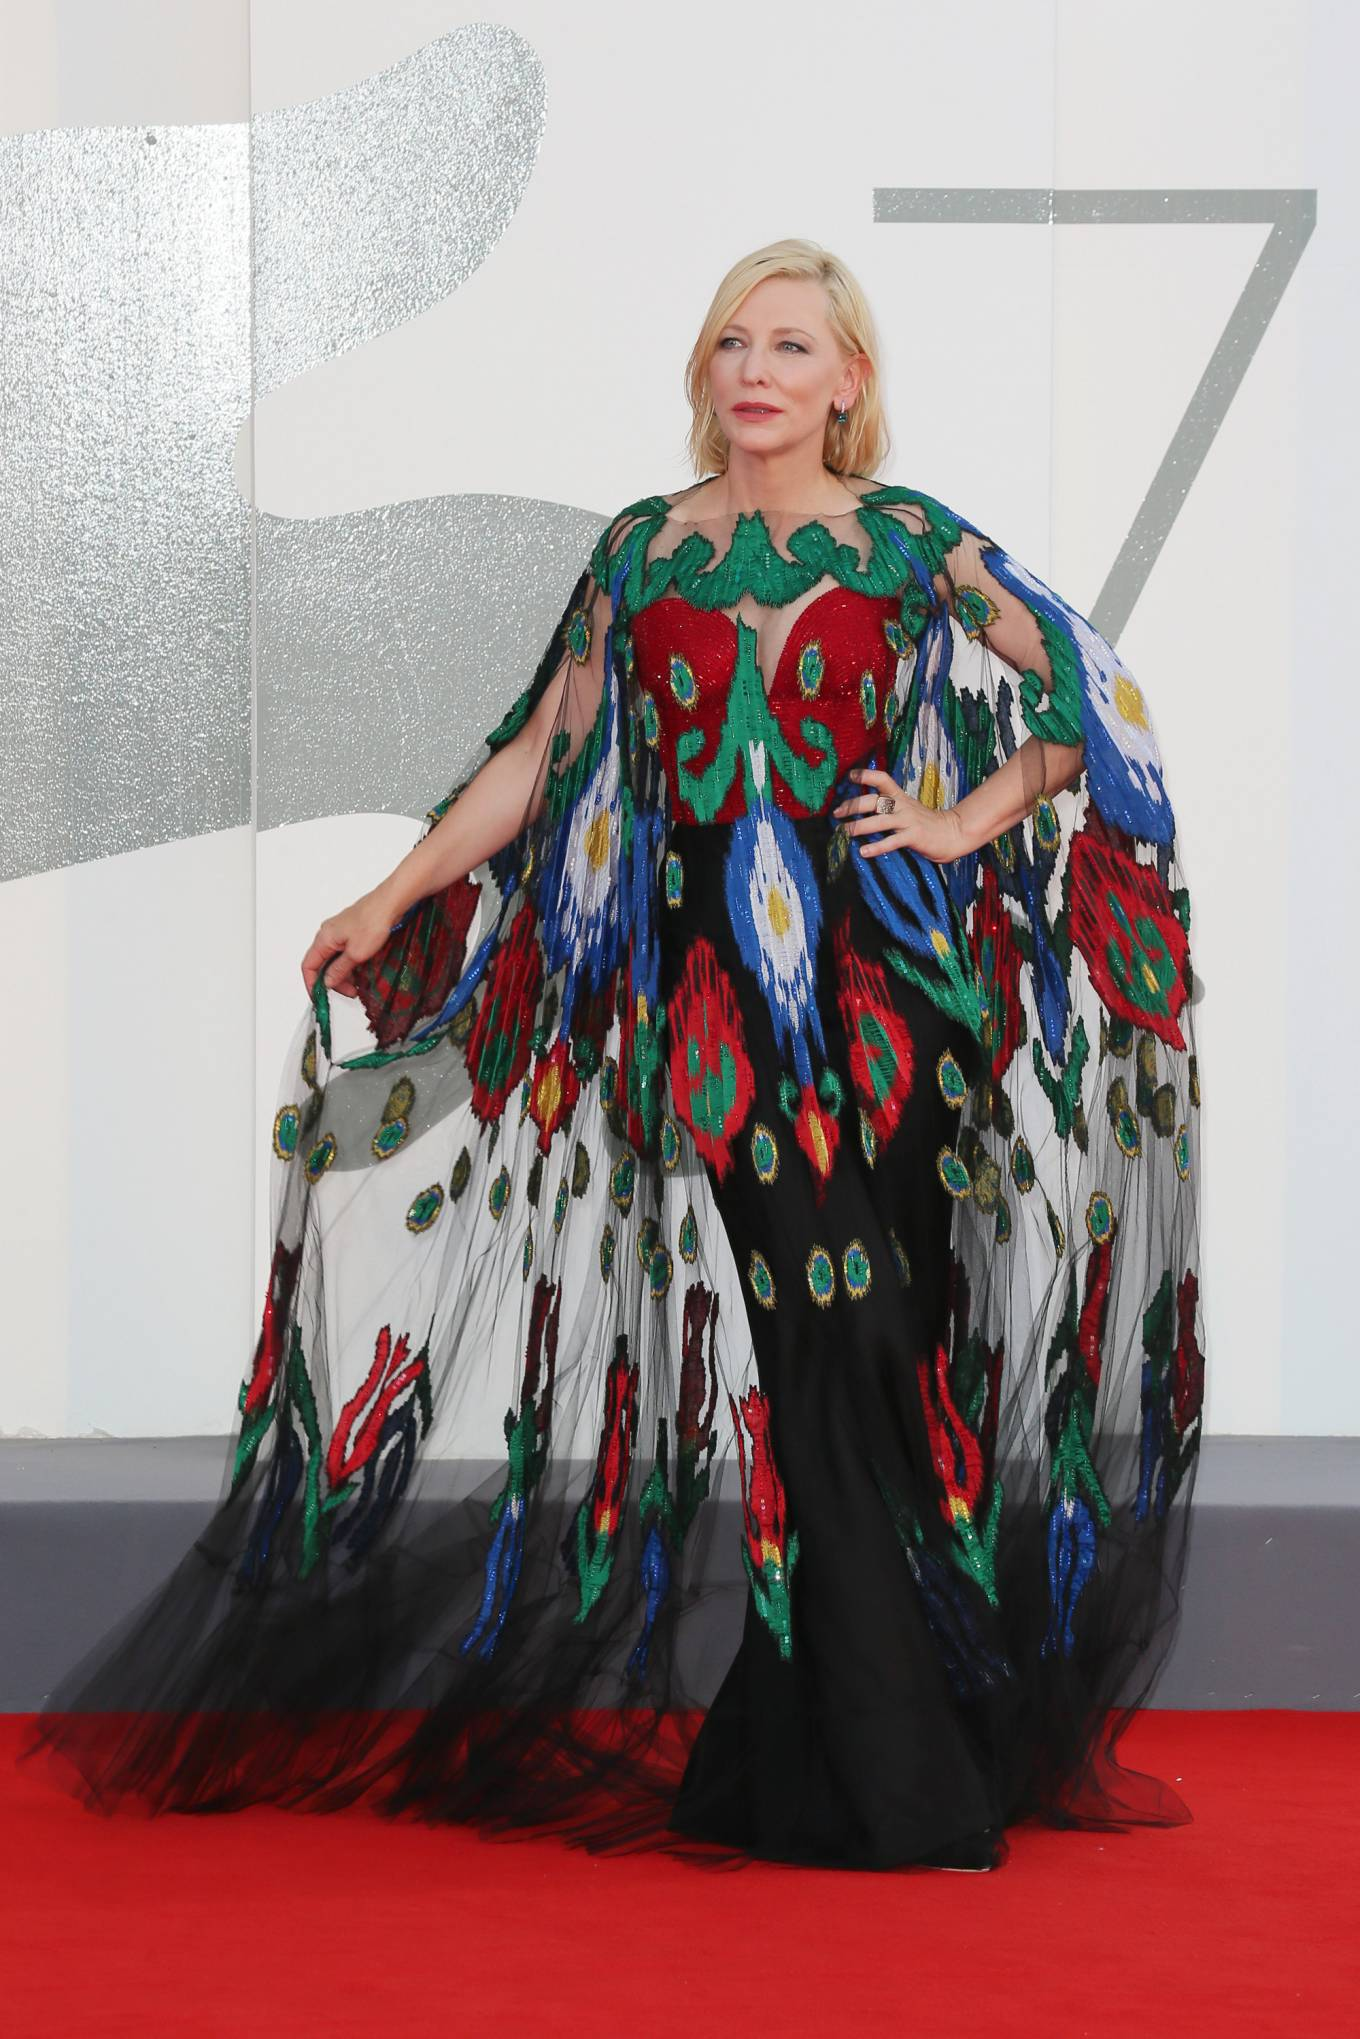 Cate Blanchett 2020 : Cate Blanchett – Closing Ceremony Red Carpet of 2020 Venice Film Festival in Venice-02